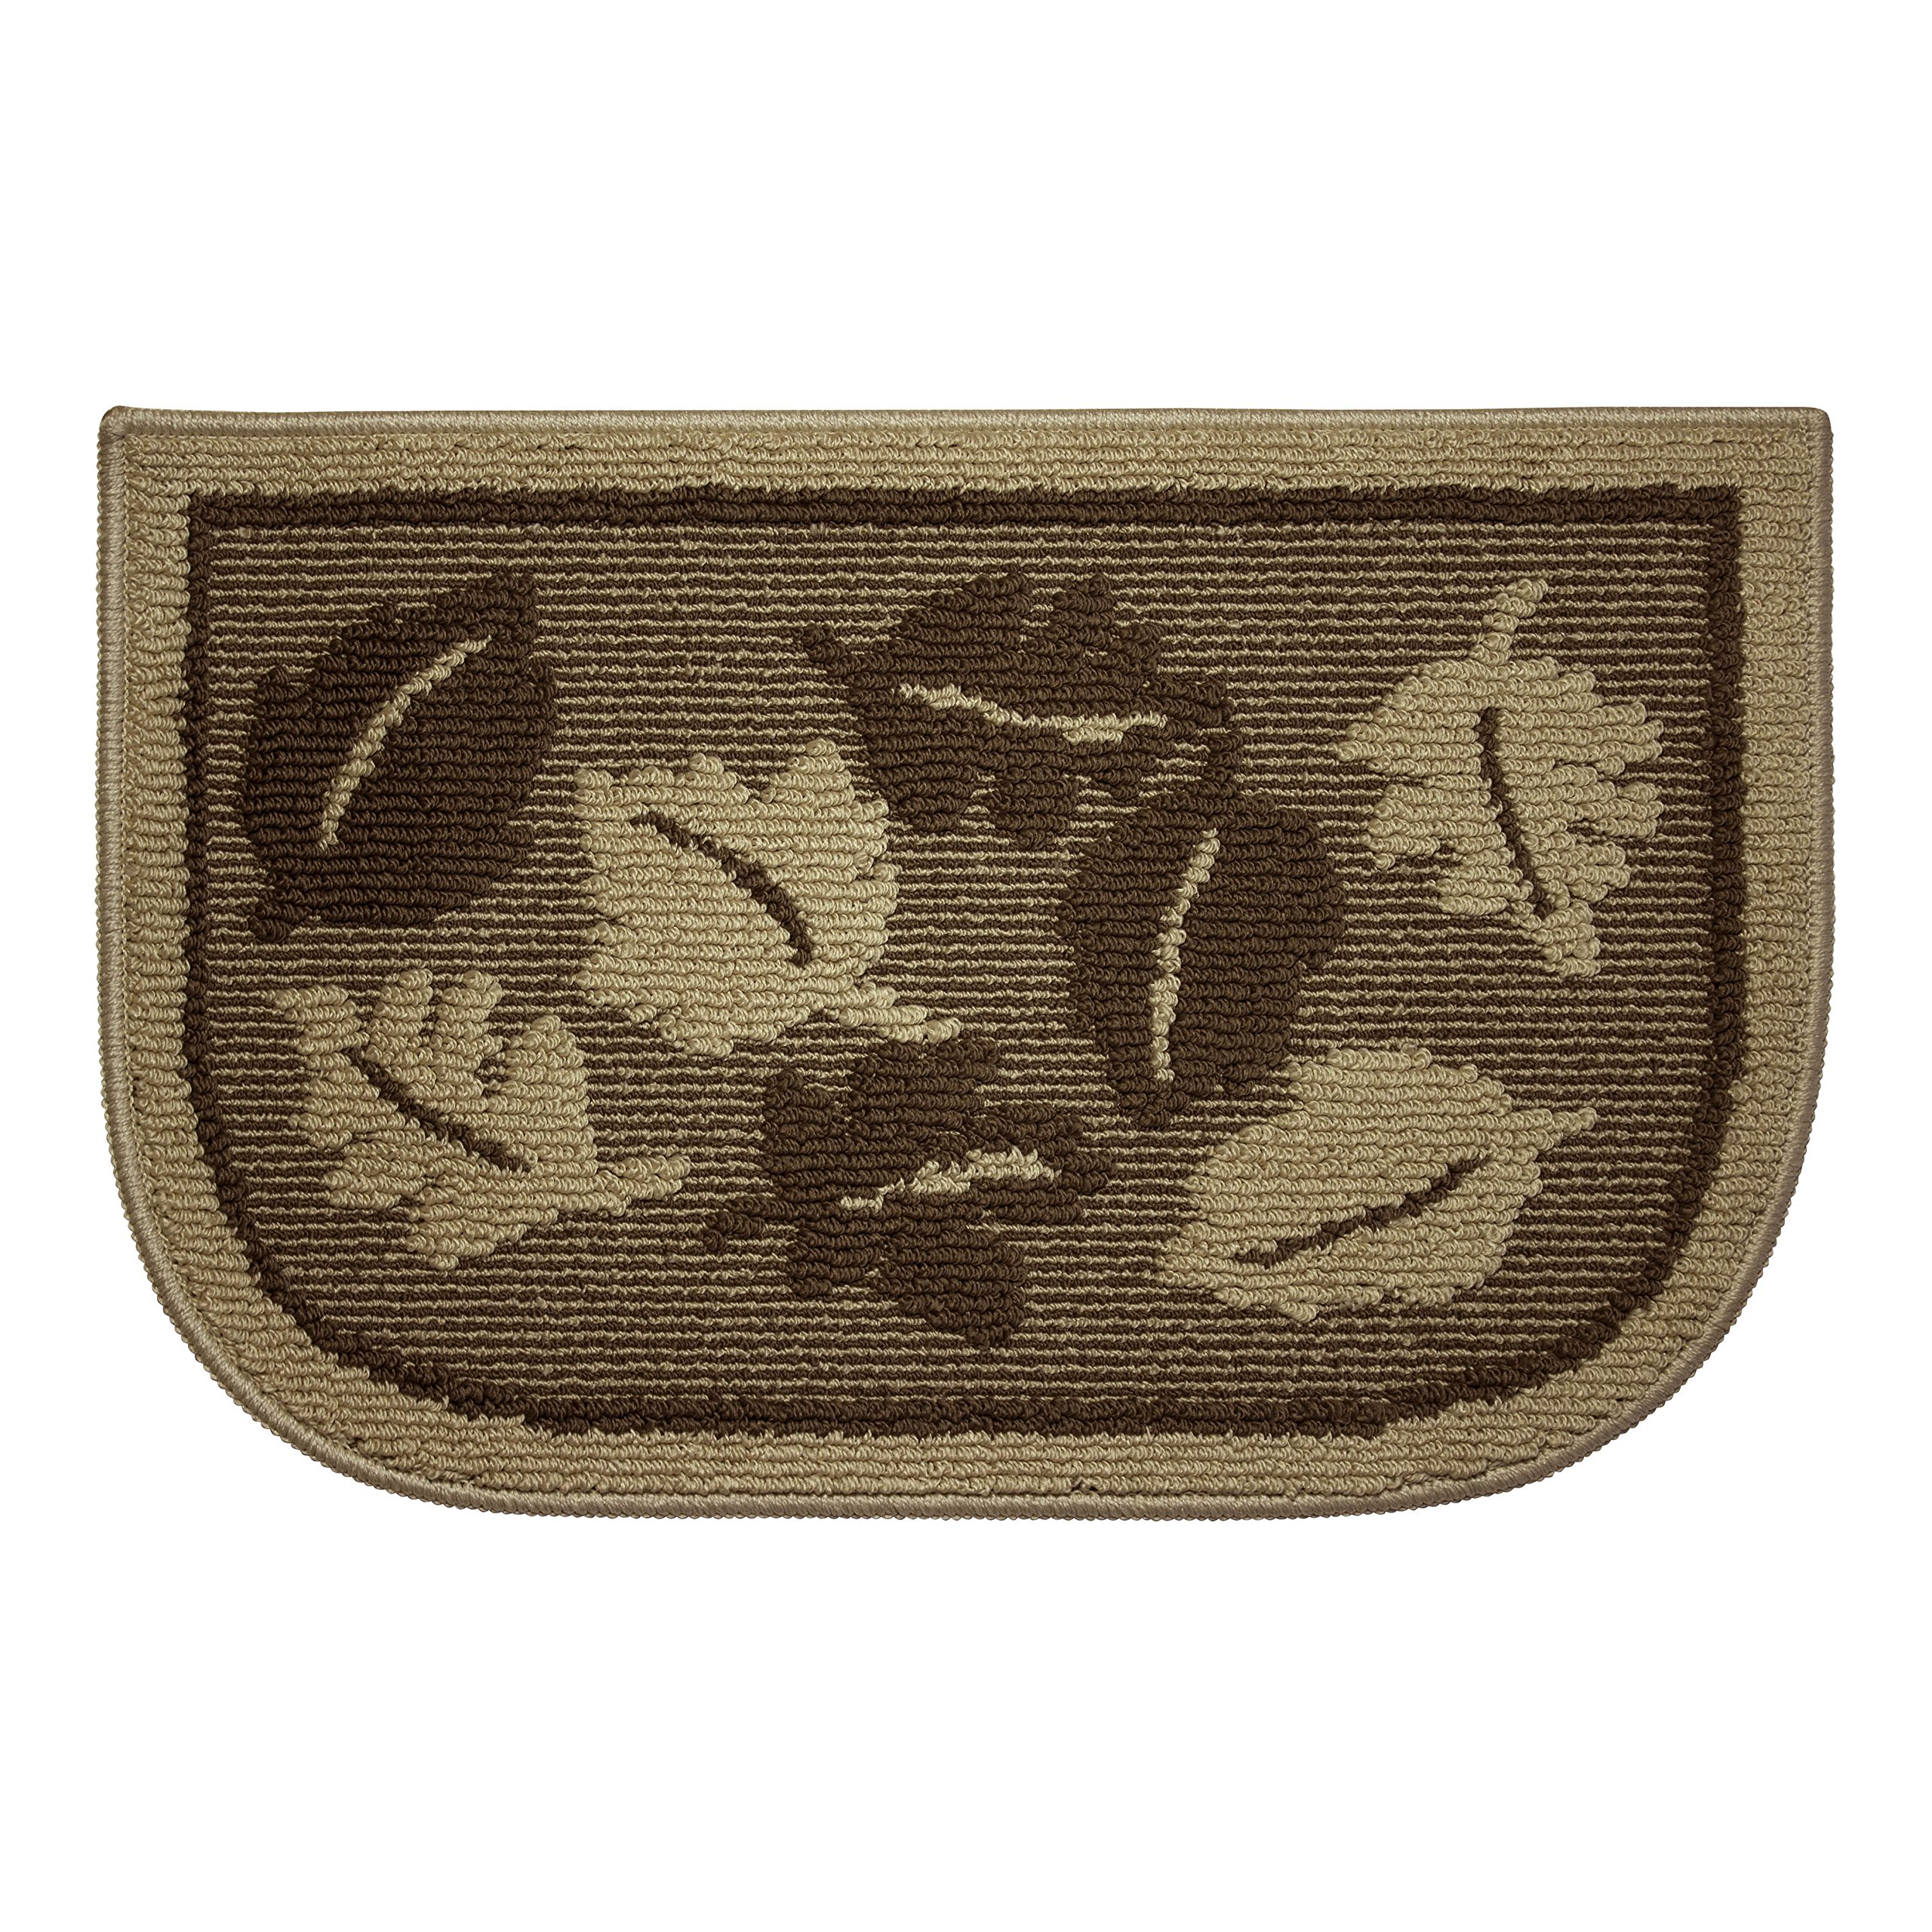 Structures Textured Non-Slip 18 x 28 in. Wedge Kitchen Rug, Livingston Leaves